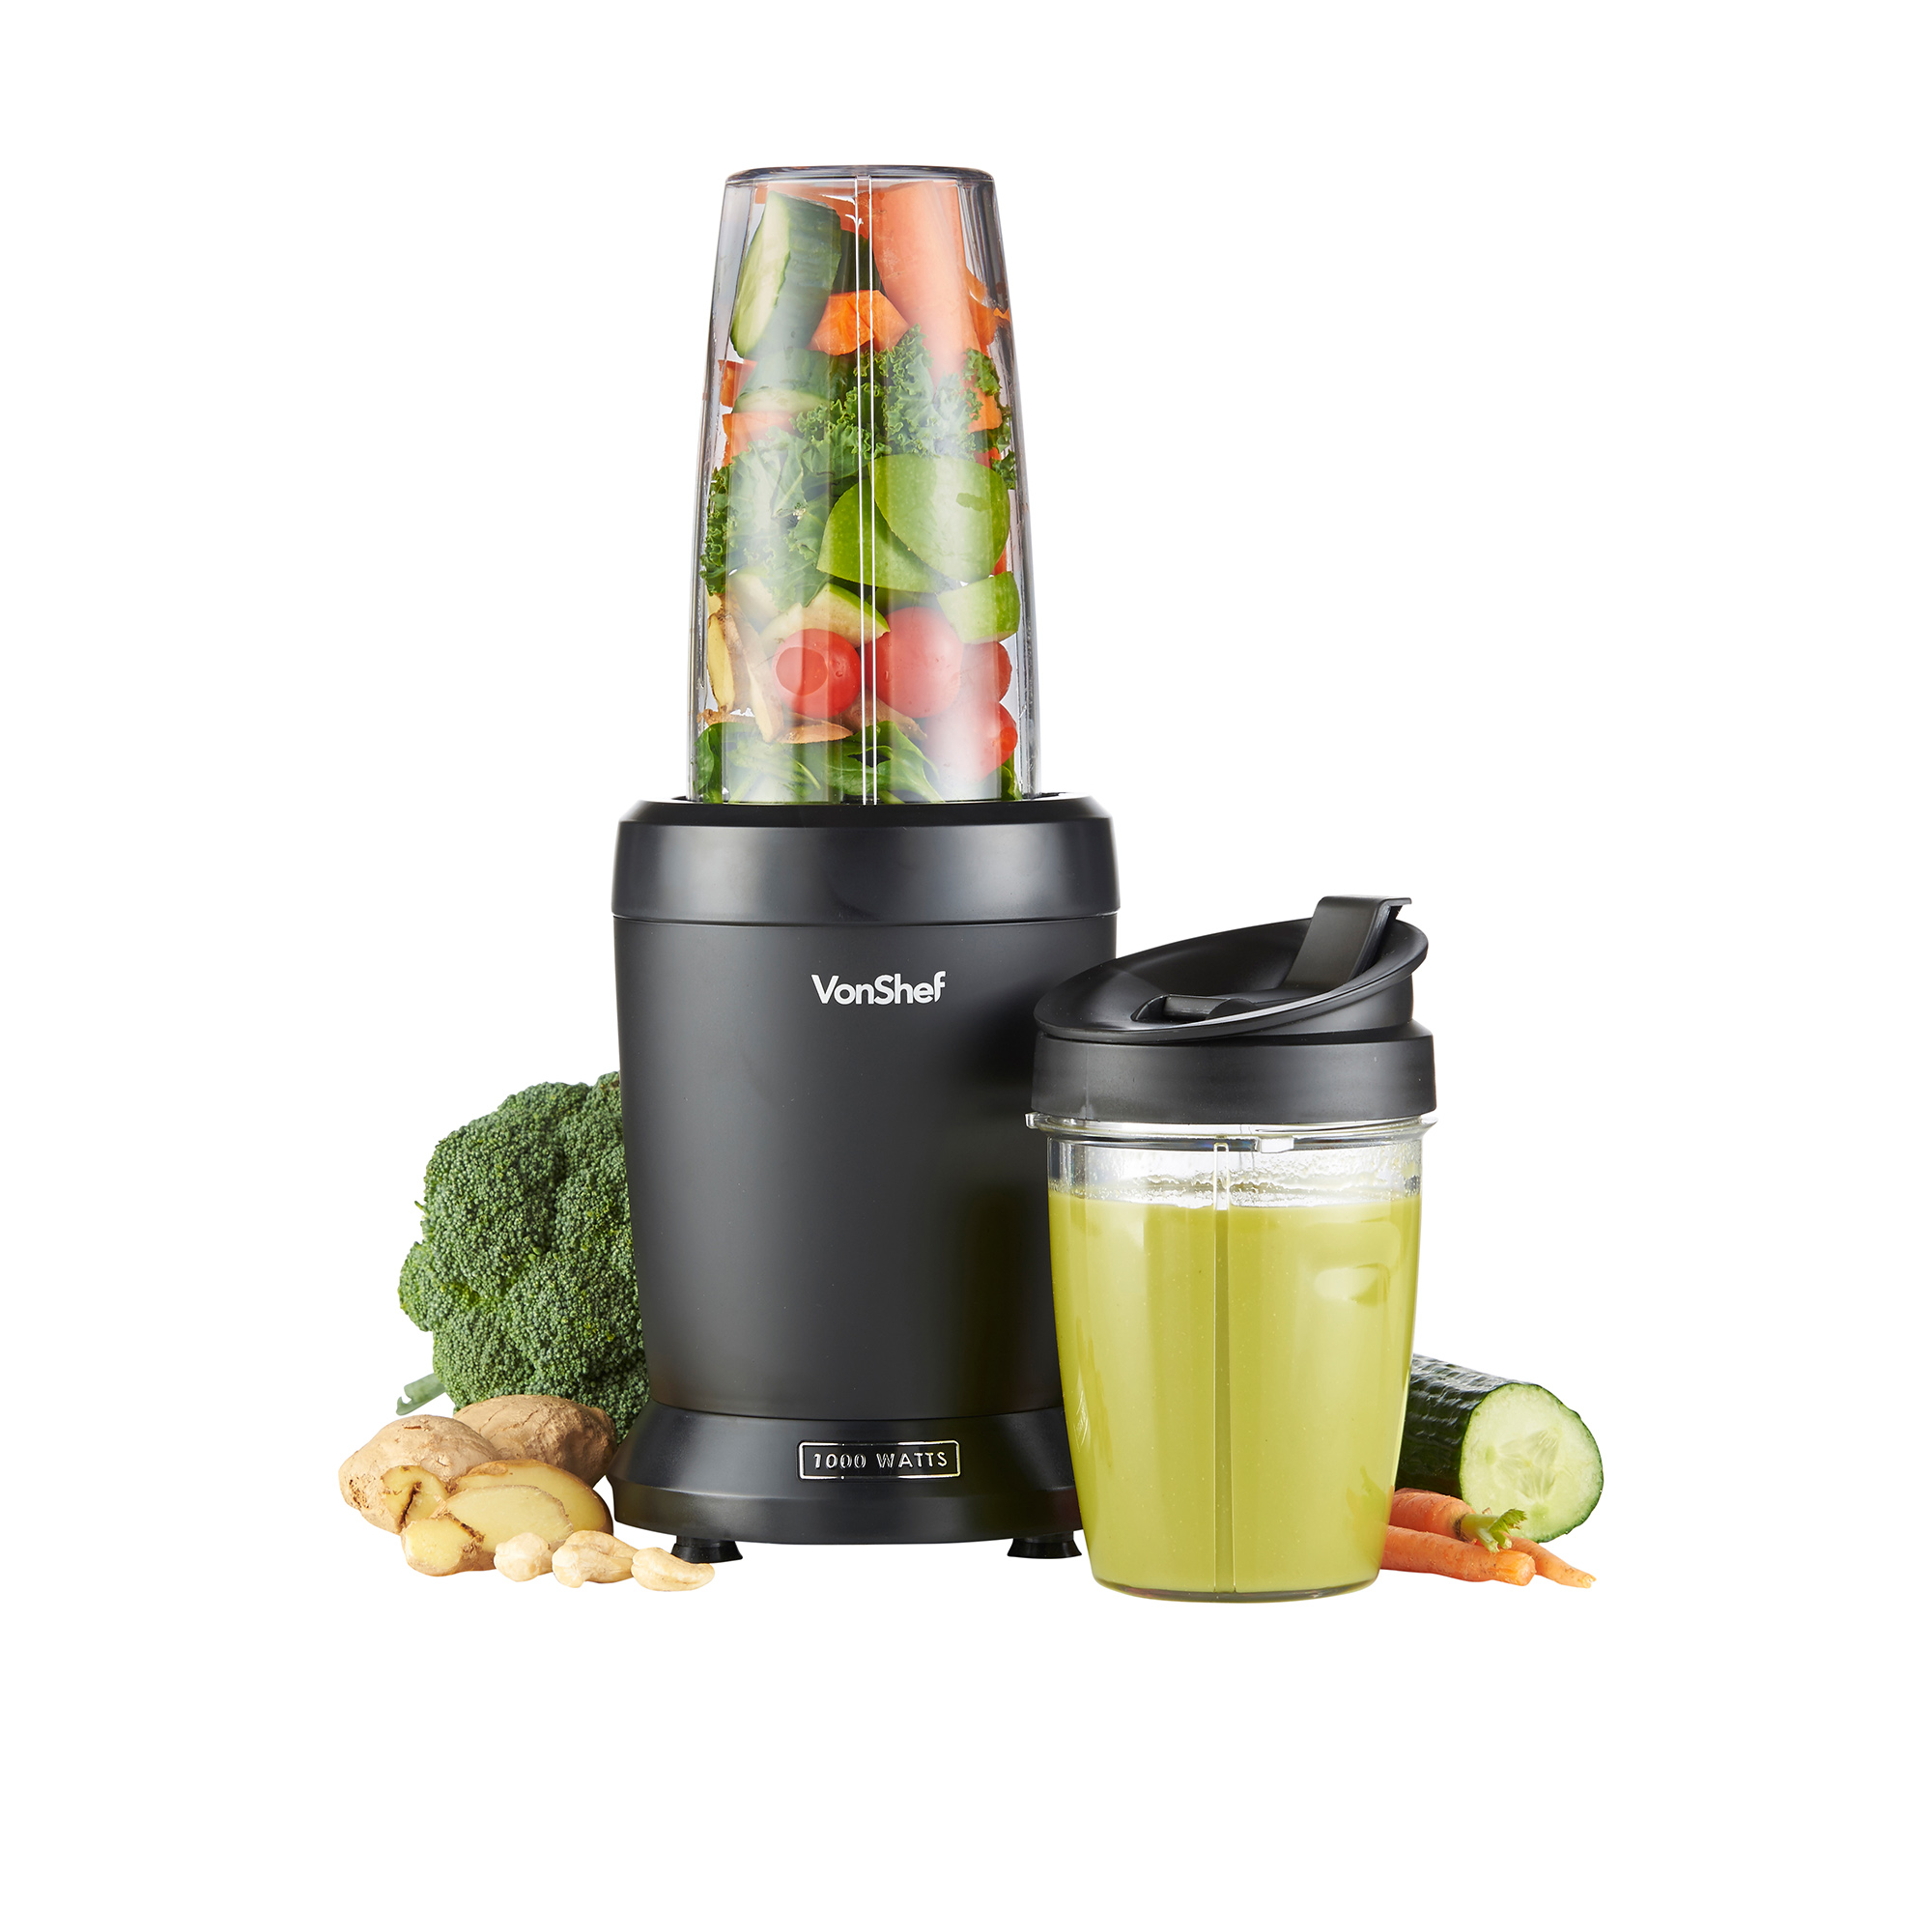 vonshef 1000w ultrablend extractor blender nutrition juicer smoothie mixer 689994344125 ebay. Black Bedroom Furniture Sets. Home Design Ideas